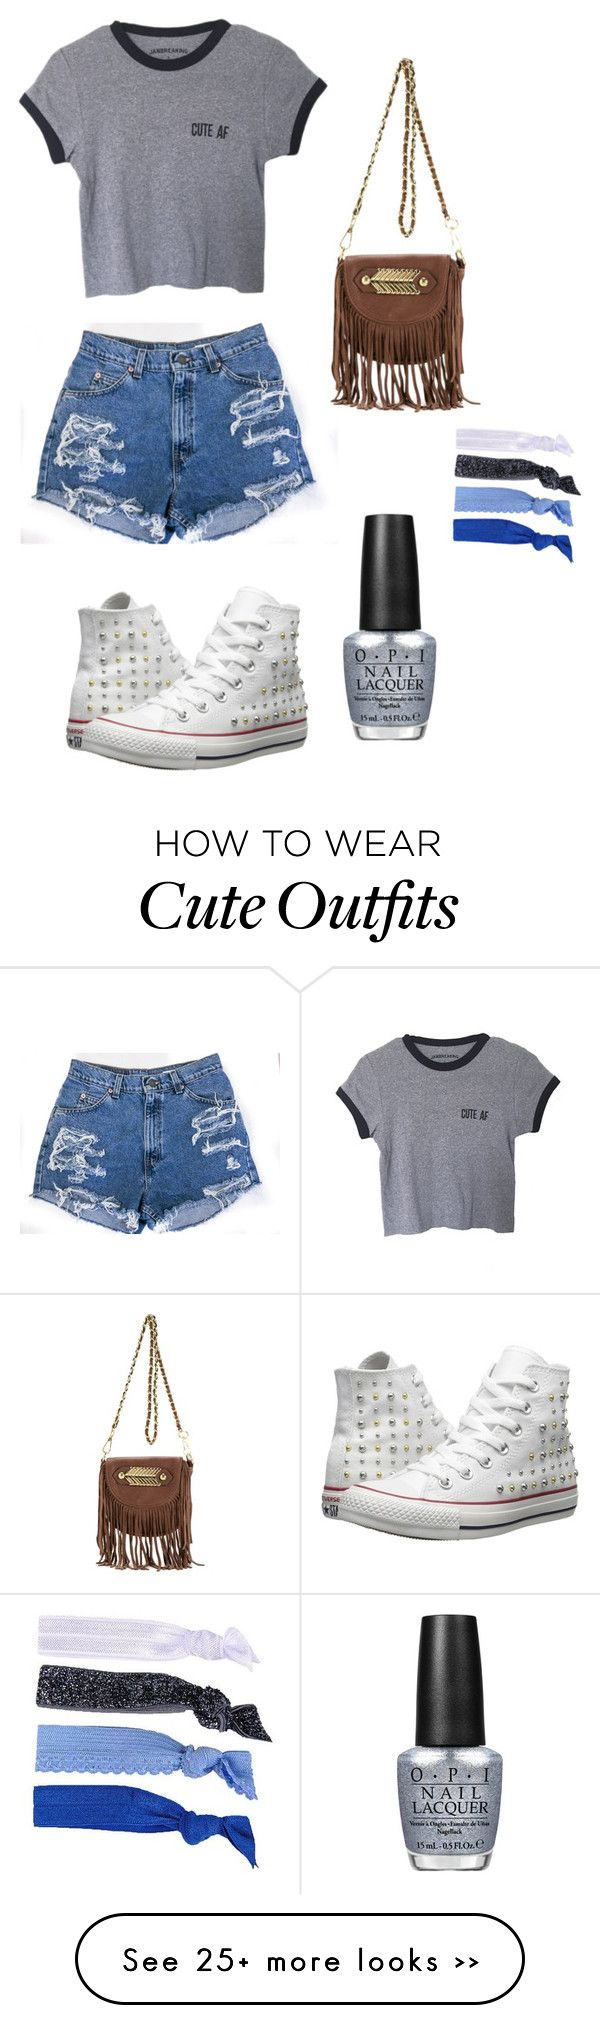 """""""Outfit A"""" by ninajosef on Polyvore"""